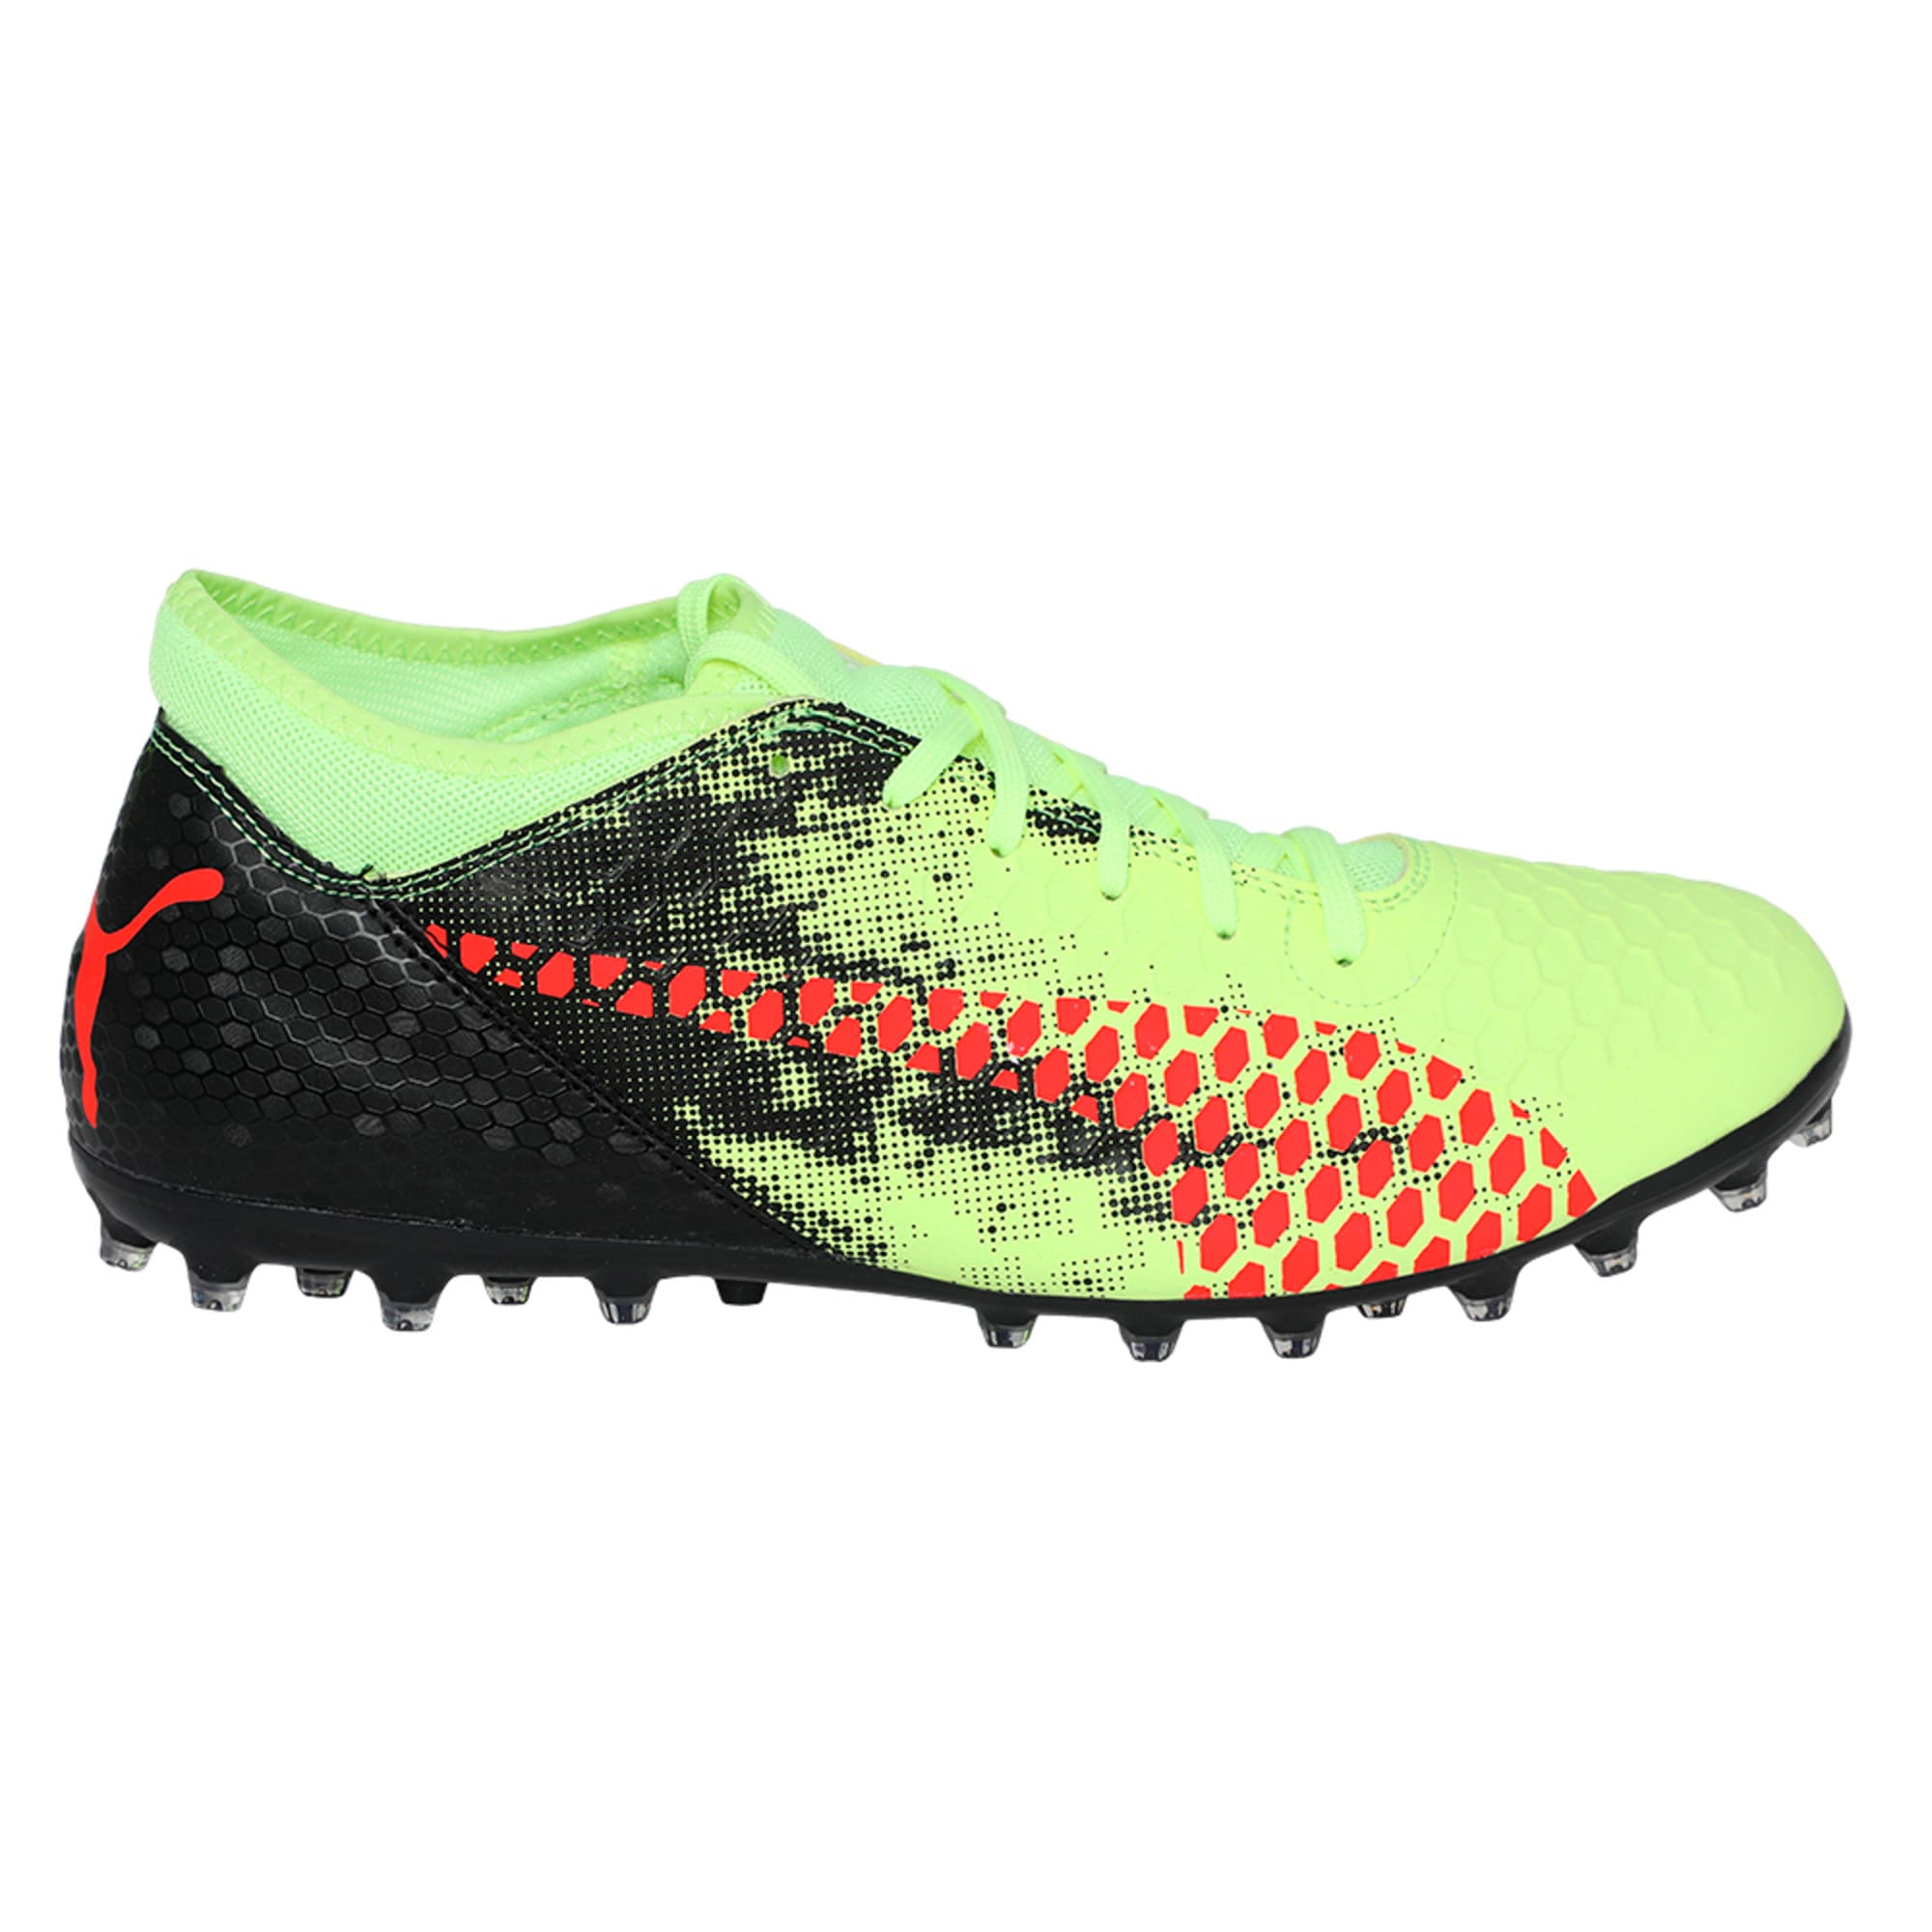 Thumbnail 5 of FUTURE 18.4 MG Men's Football Boots, Yellow-Red-Black, medium-IND